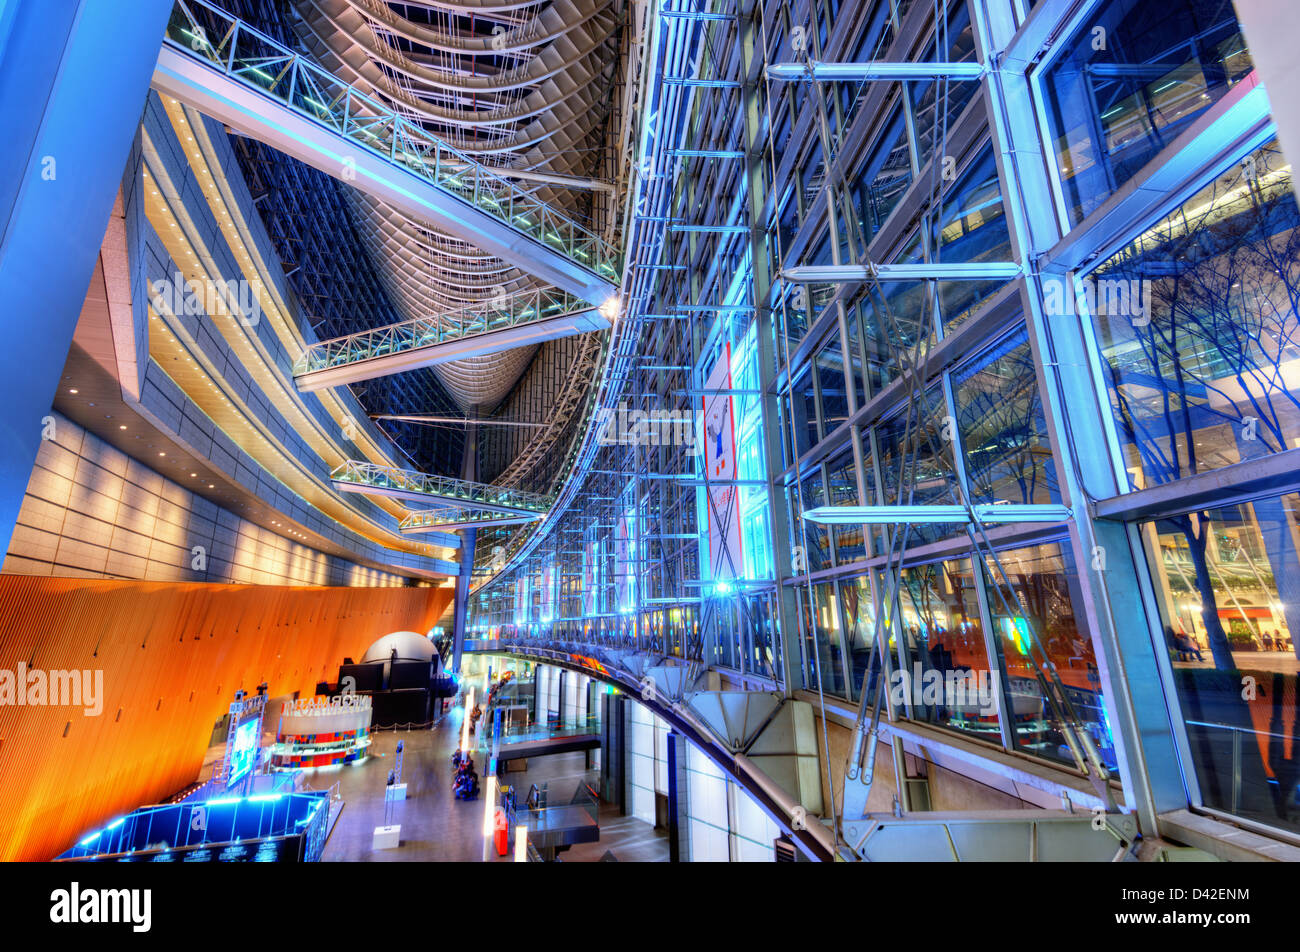 International Forum in the Ginza District of Tokyo, Japan. - Stock Image